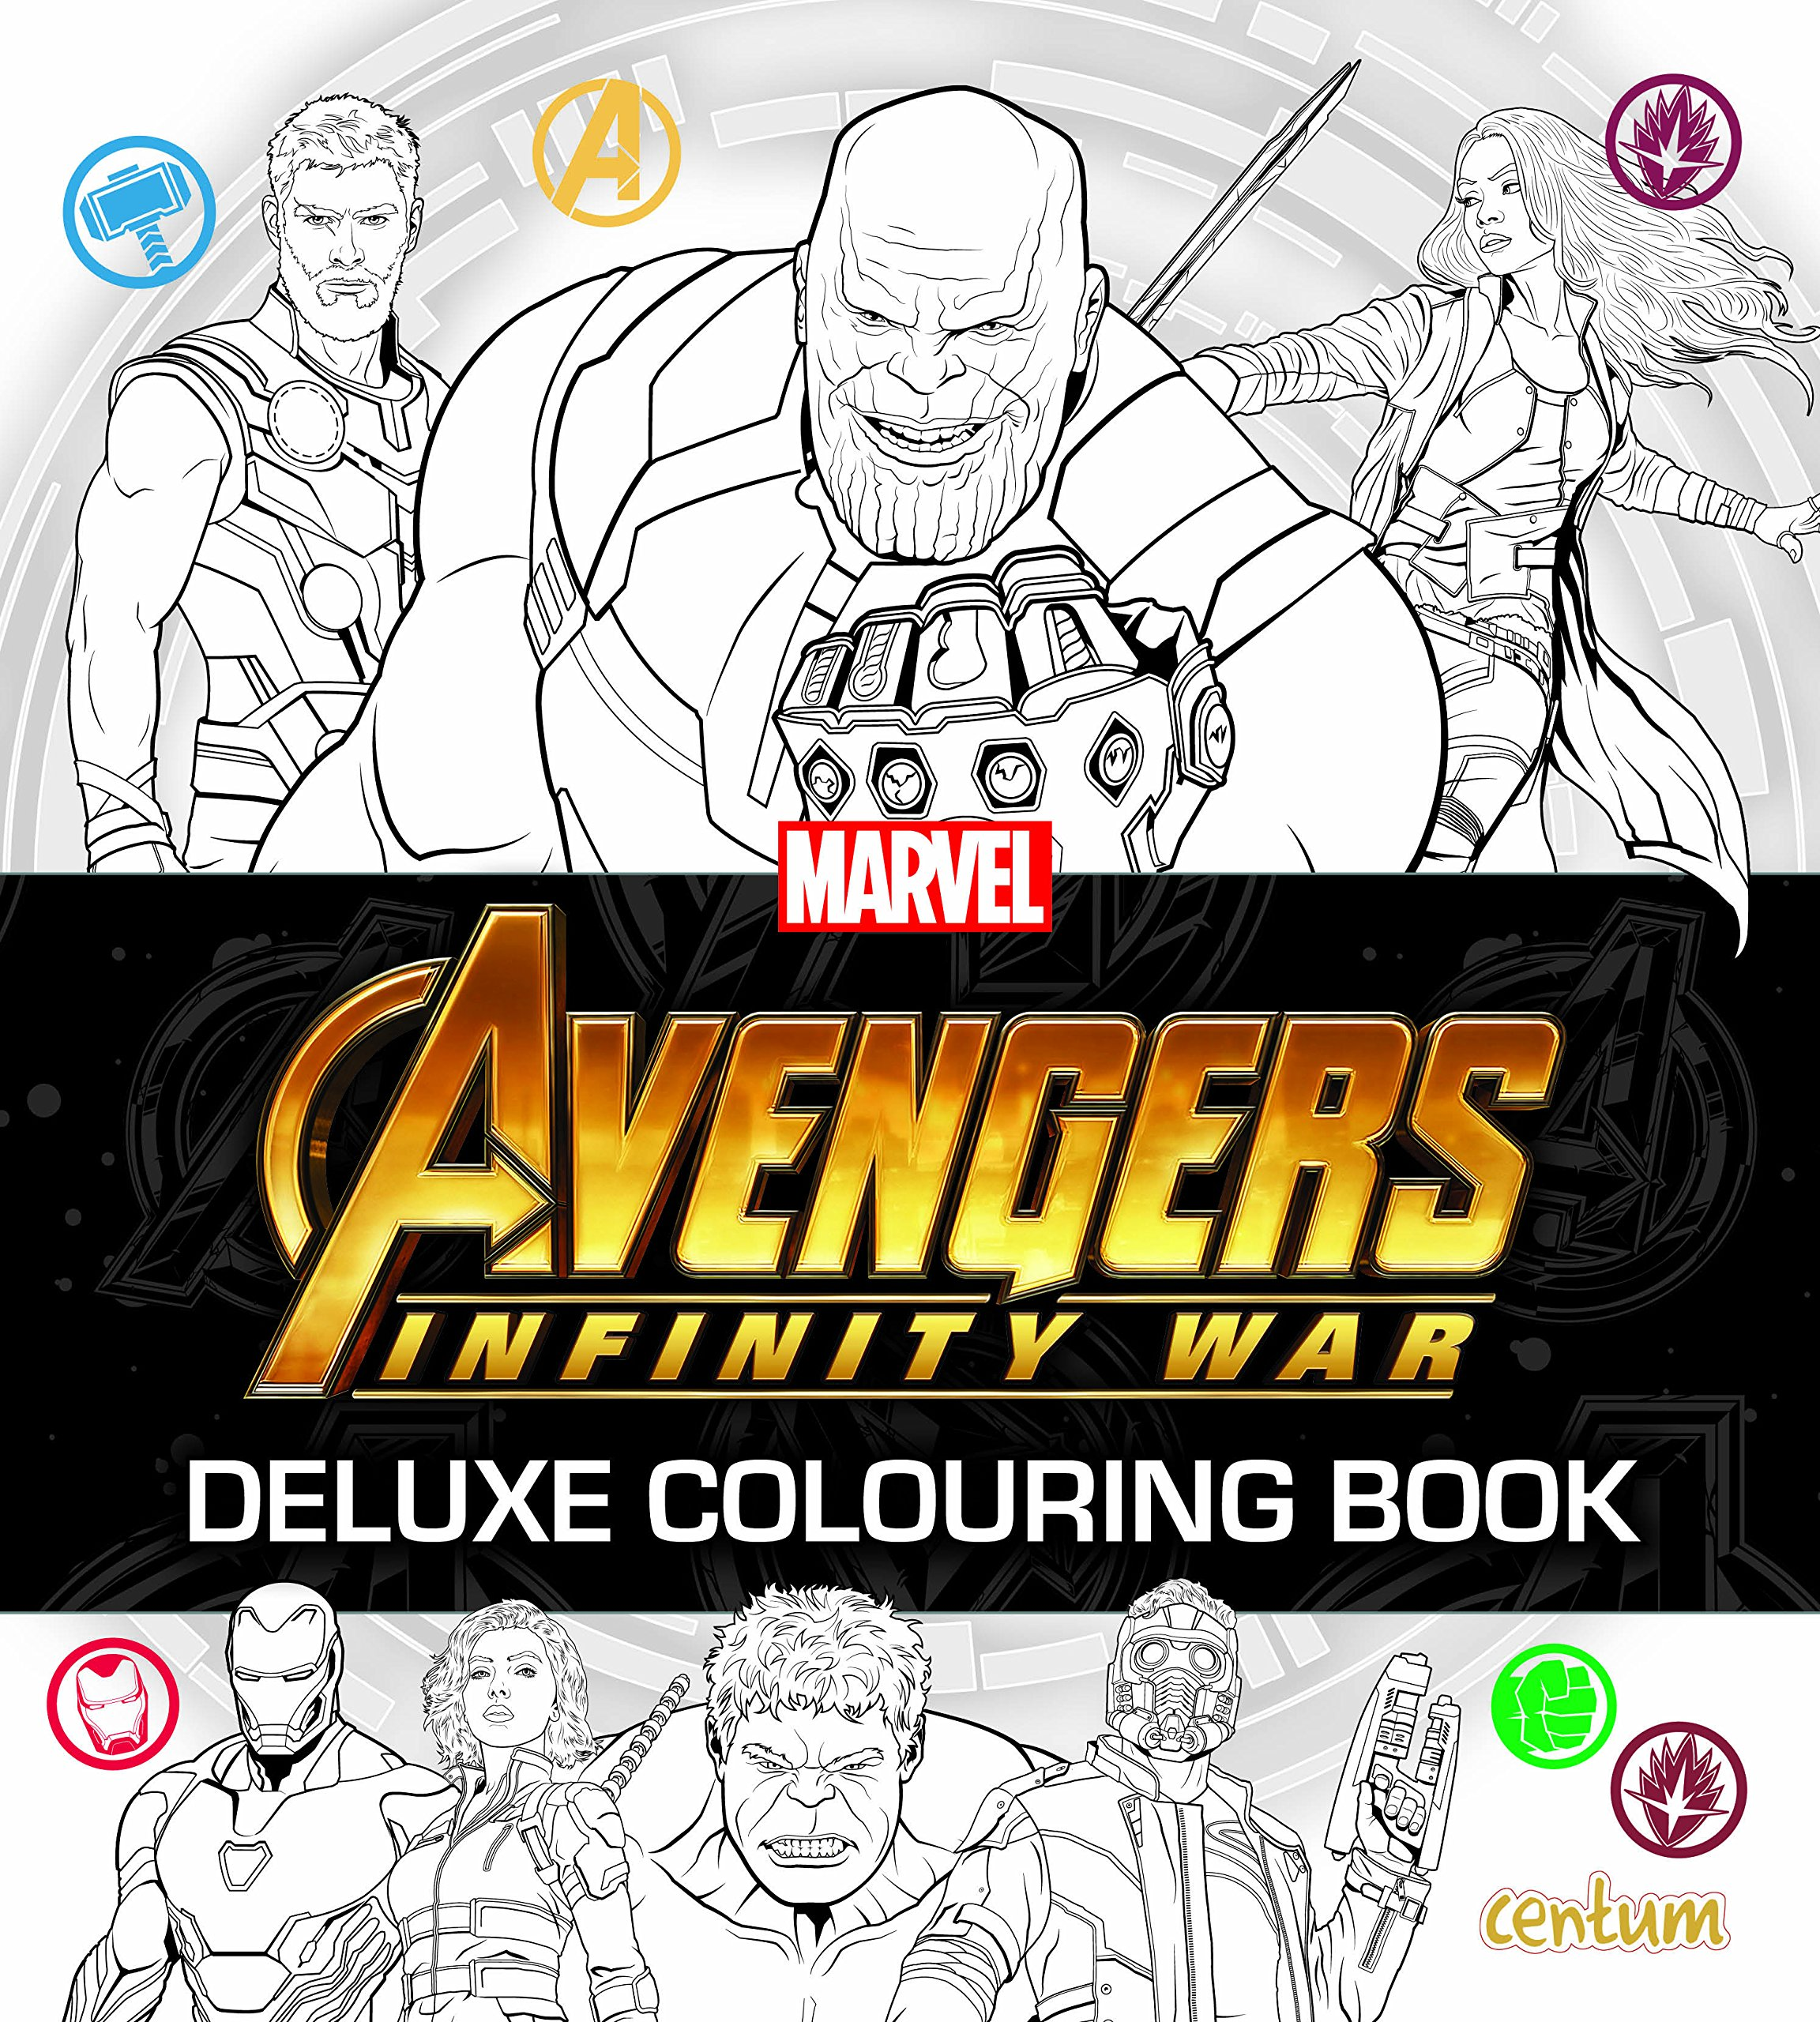 Avengers infinity war deluxe colouring book paperback import 30 mar 2018